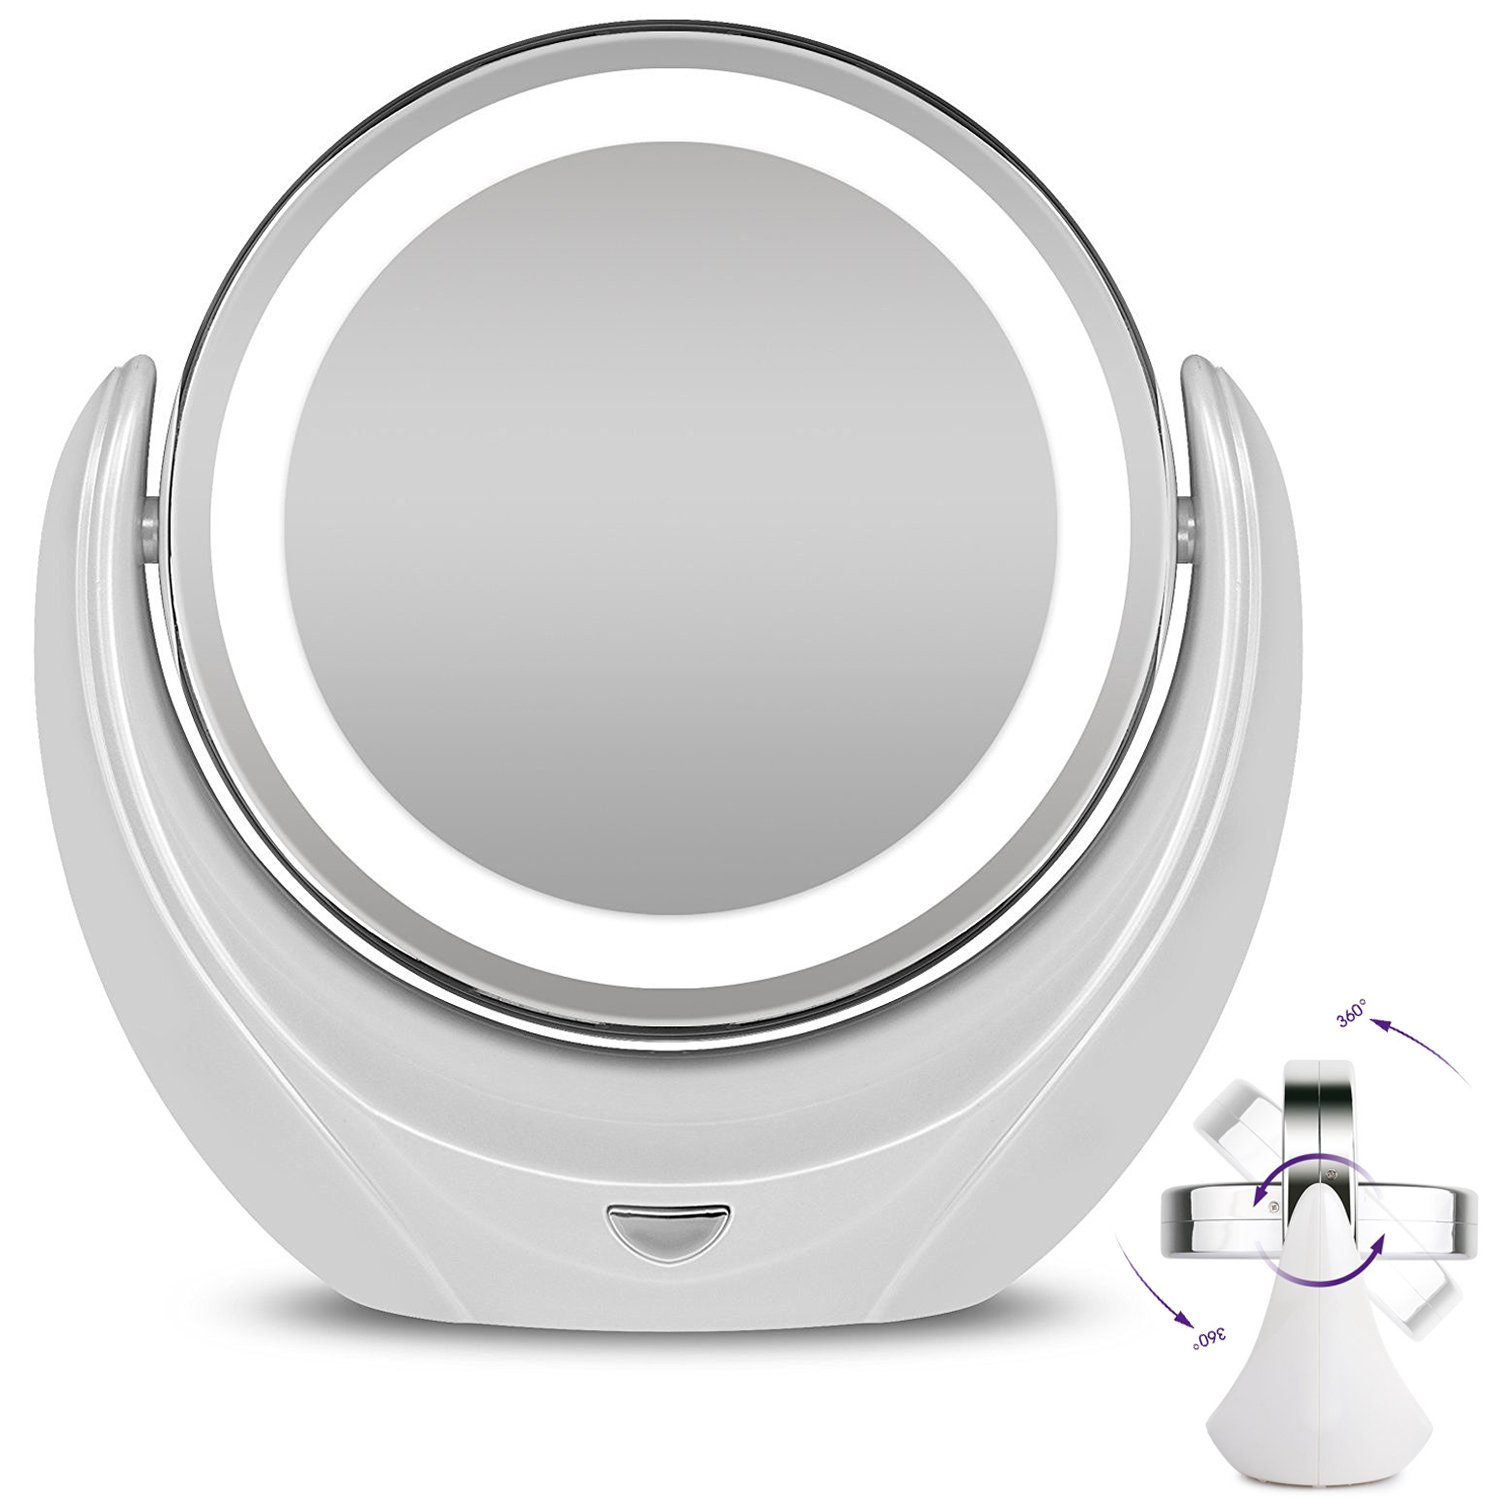 Rantizon Makeup Mirror LED Illuminated Cosmetic Mirror 1X/5X Magnification Double Face 360°Rotation Shaving Mirror for Beauty, Tabletop, Bathroom, Bedroom, Travel Mirror with Stand, Double Sided